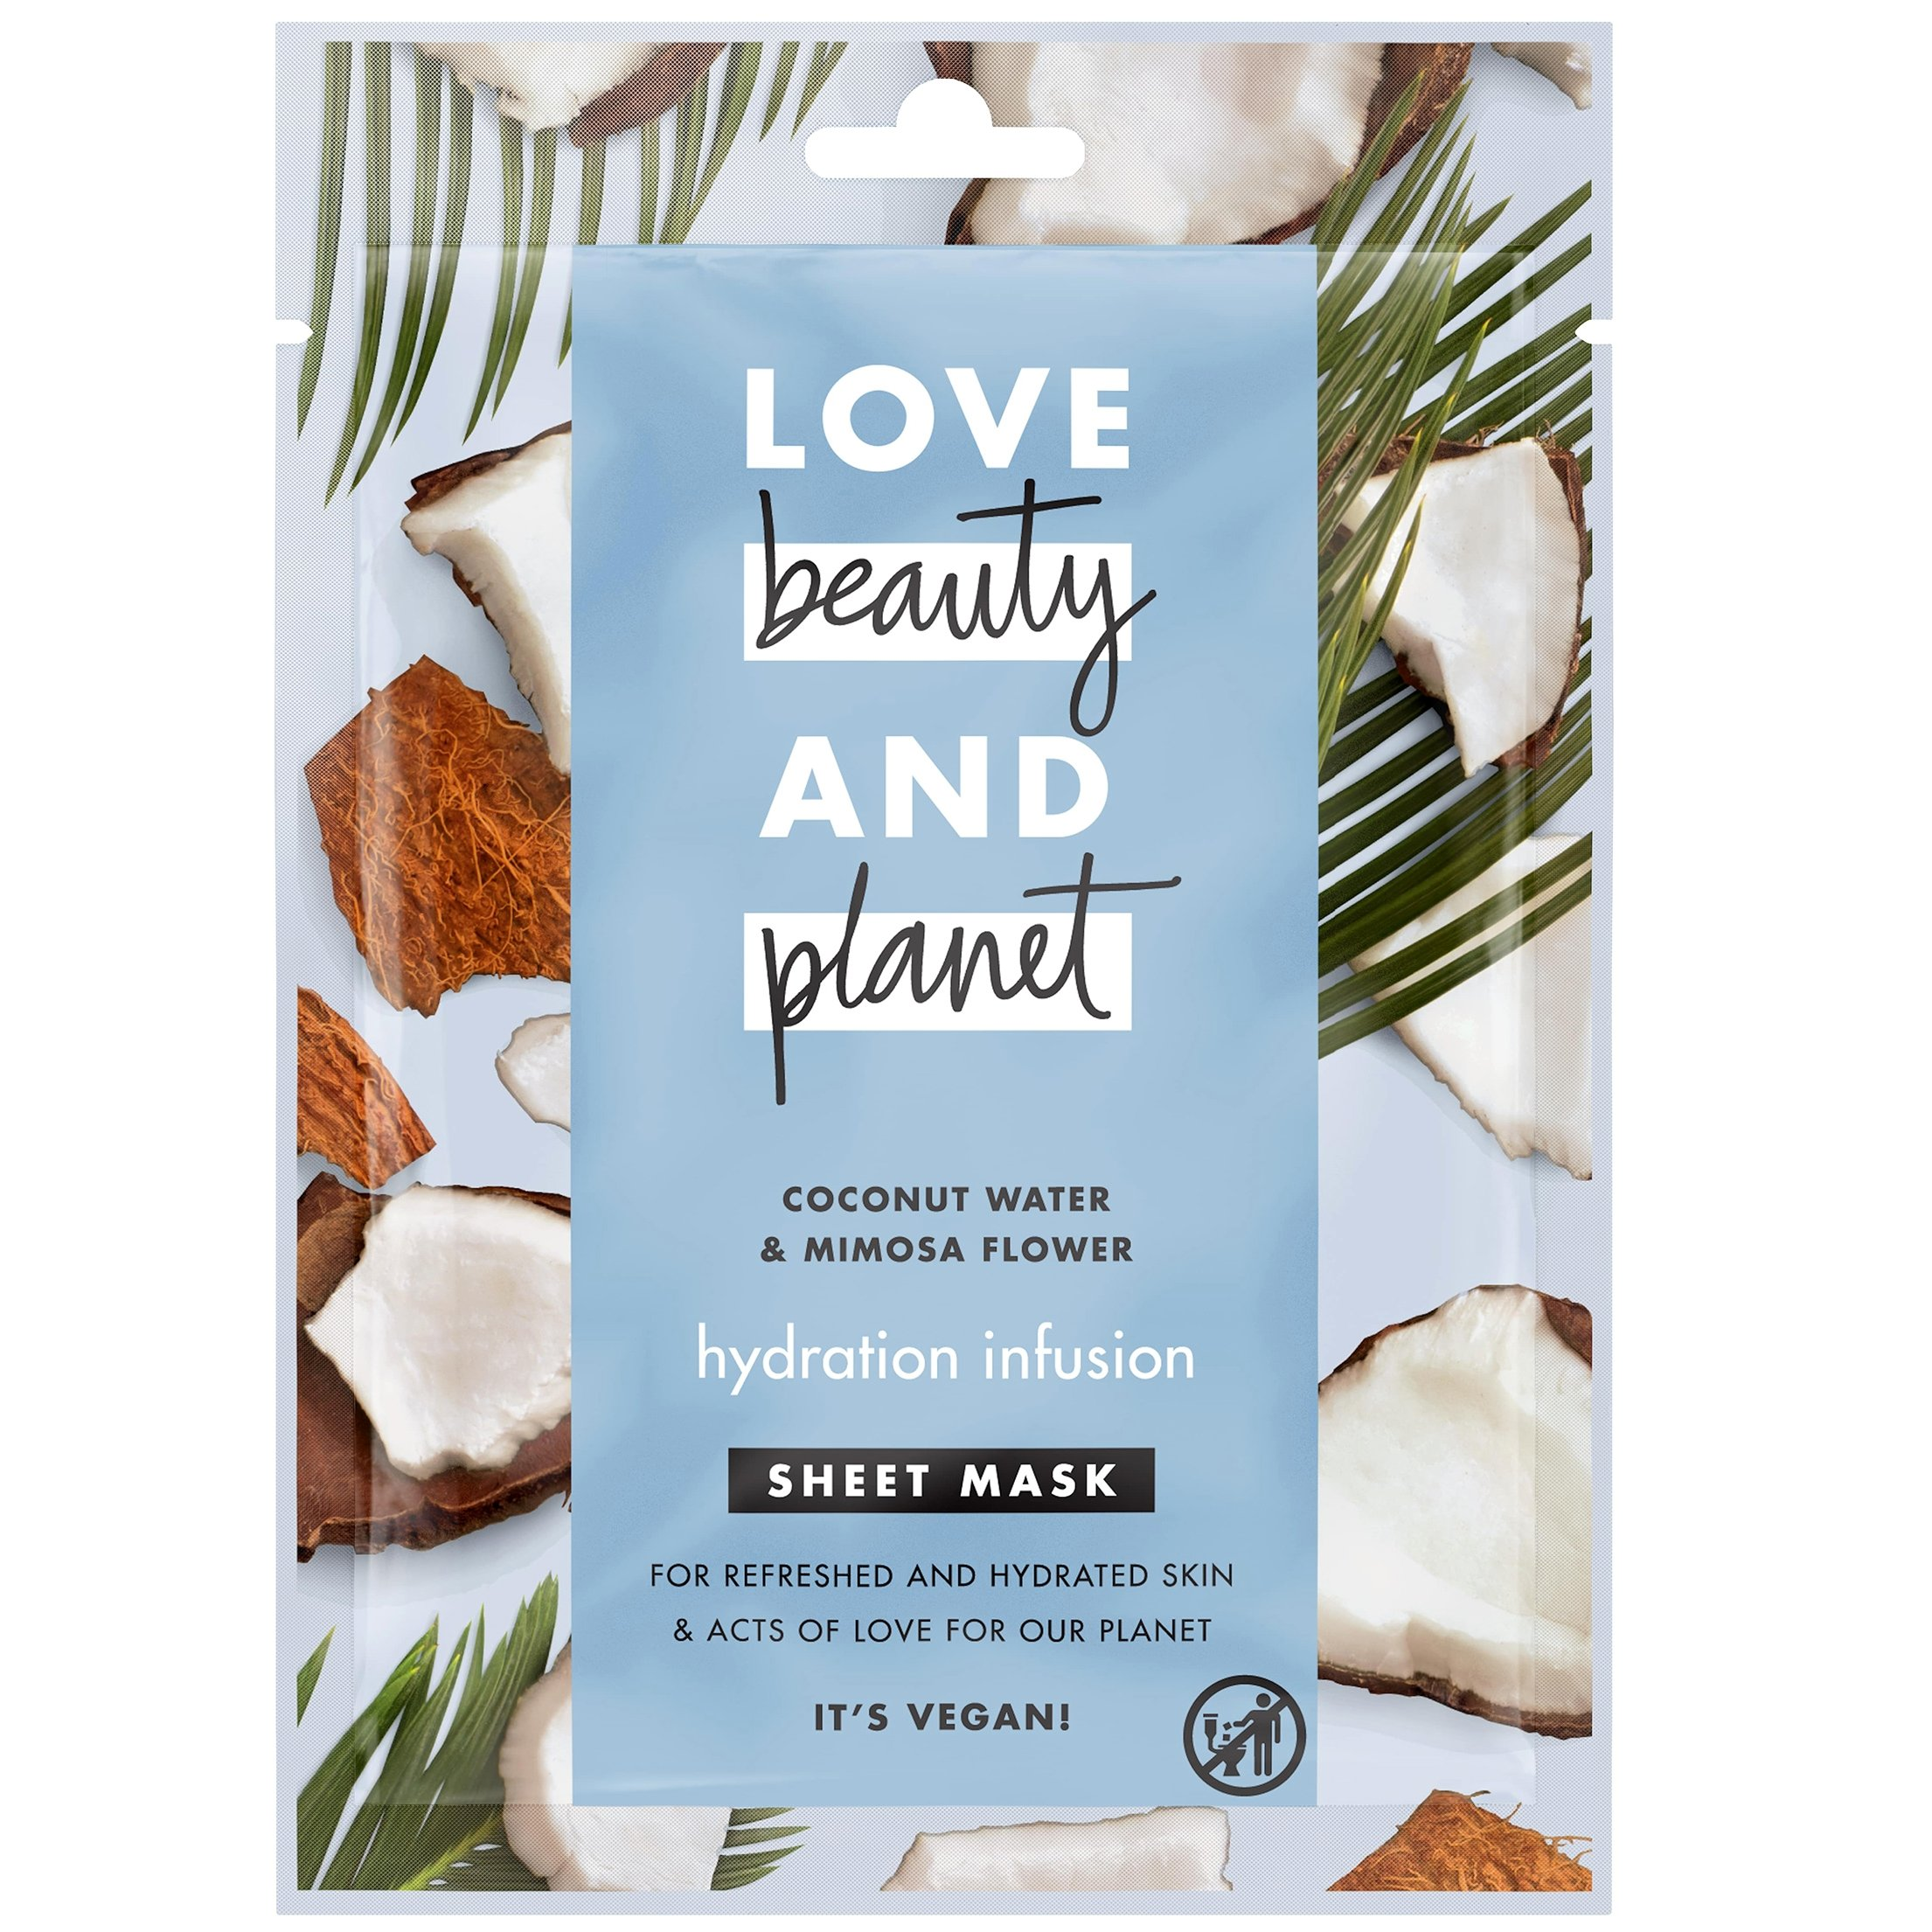 Love Beauty and Planet Face Shett Mask Coconut, Μάσκα Προσώπου για Φρέσκια & Ενυδατωμένη Επιδερμίδα 21ml